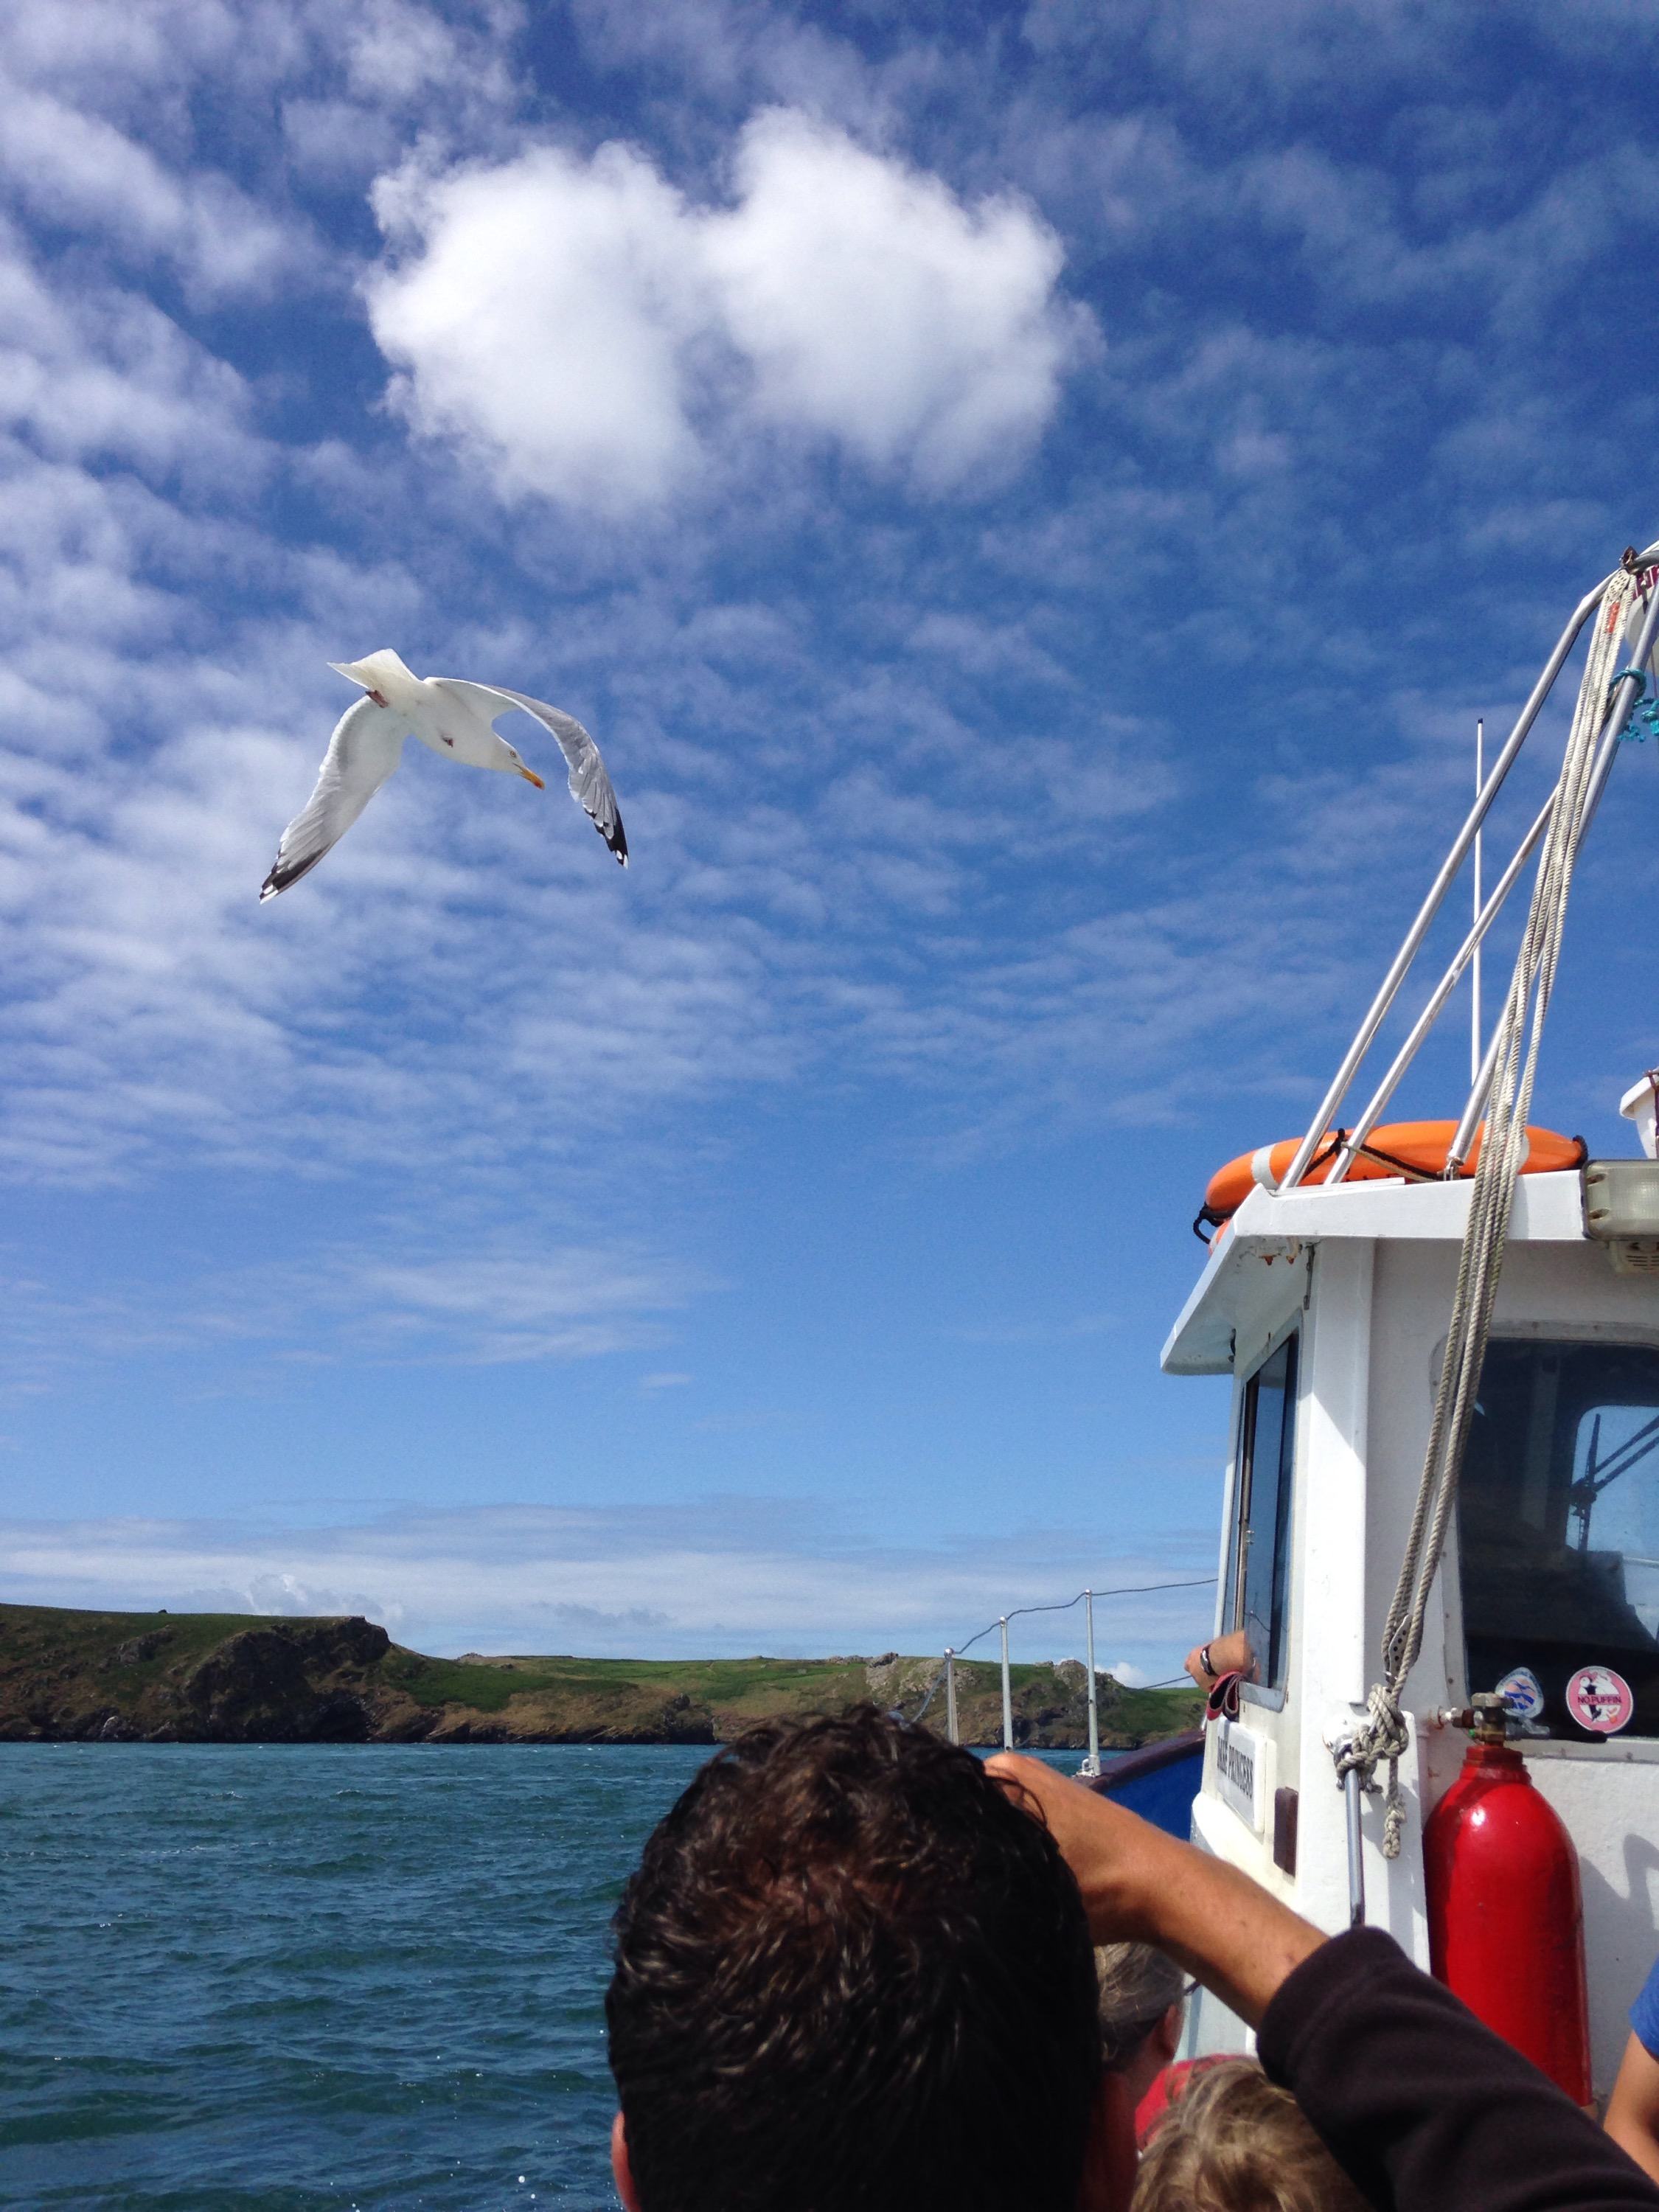 Gull flying next to boat